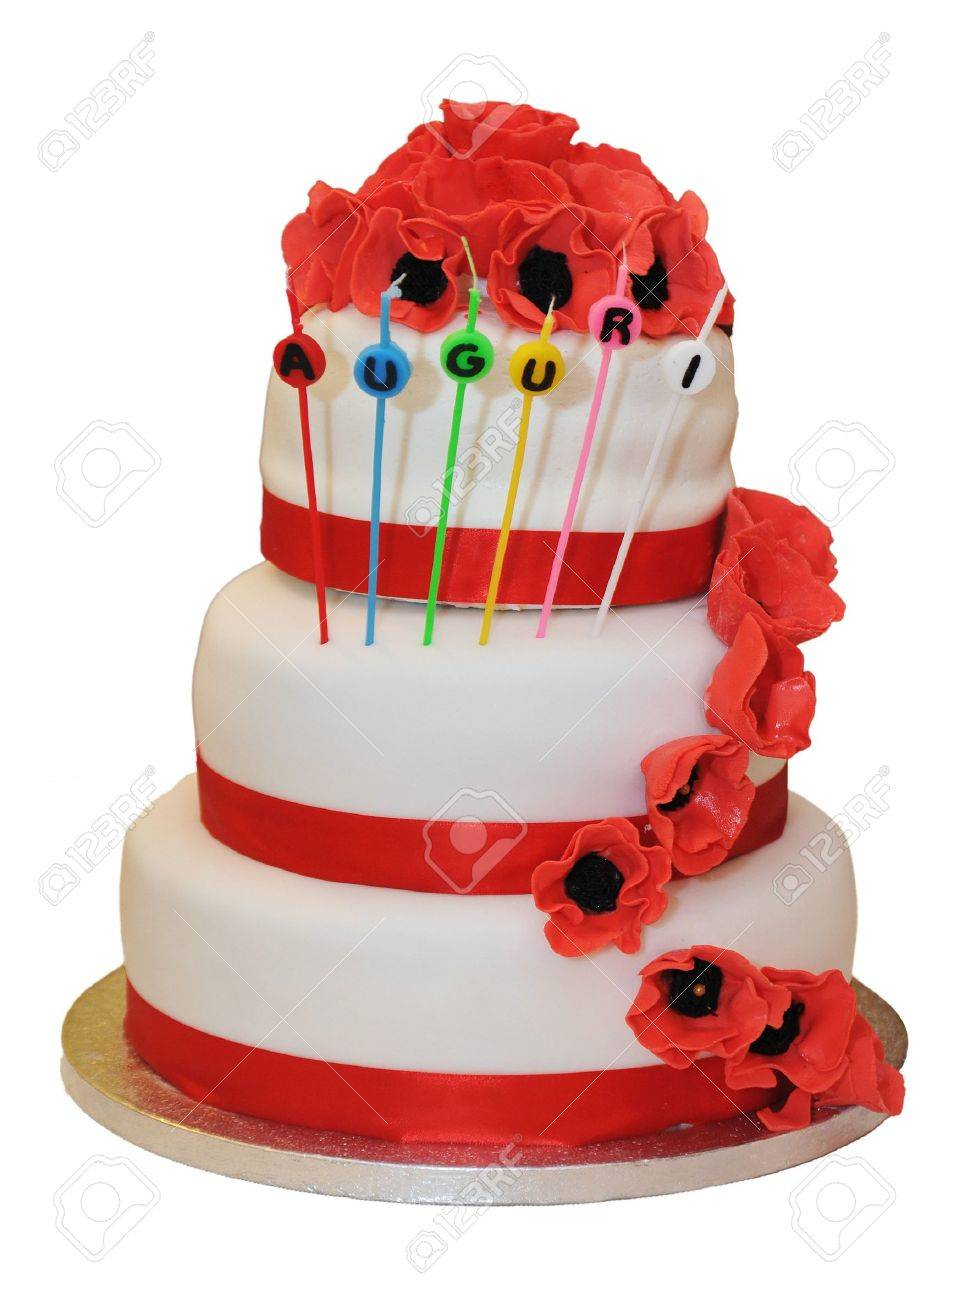 Details On A Wedding Cake With Red Ribbons And Decorations Stock Photo Picture And Royalty Free Image Image 13968636